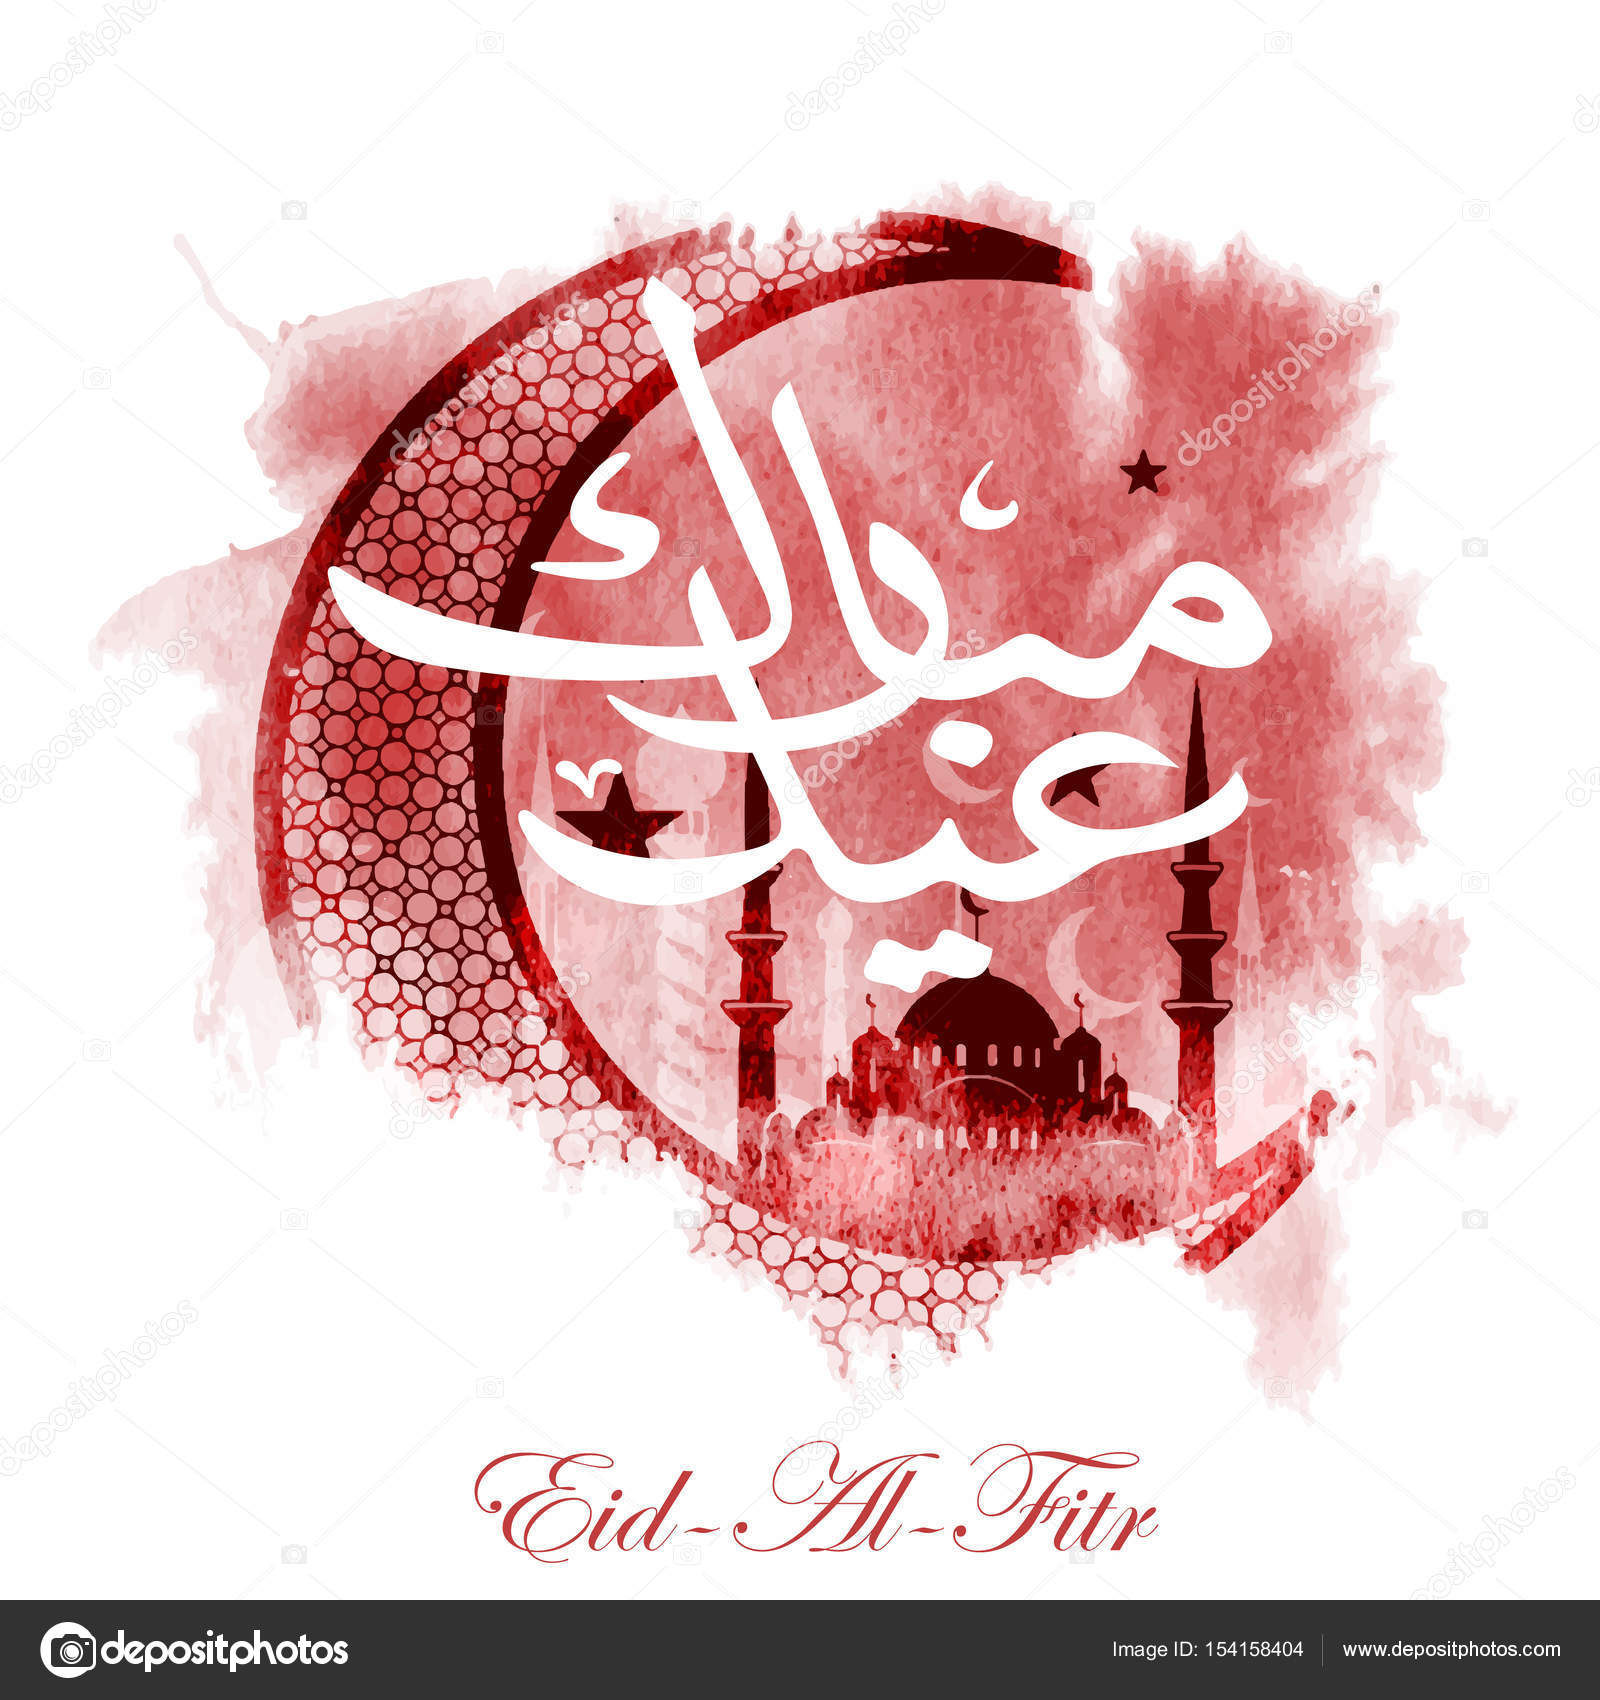 Eid al fitr greeting card stock photo vklim2011 154158404 calligraphy of arabic text eid al fitr feast of breaking the fast holiday greeting card in retro style text in arabic happy holiday kristyandbryce Choice Image